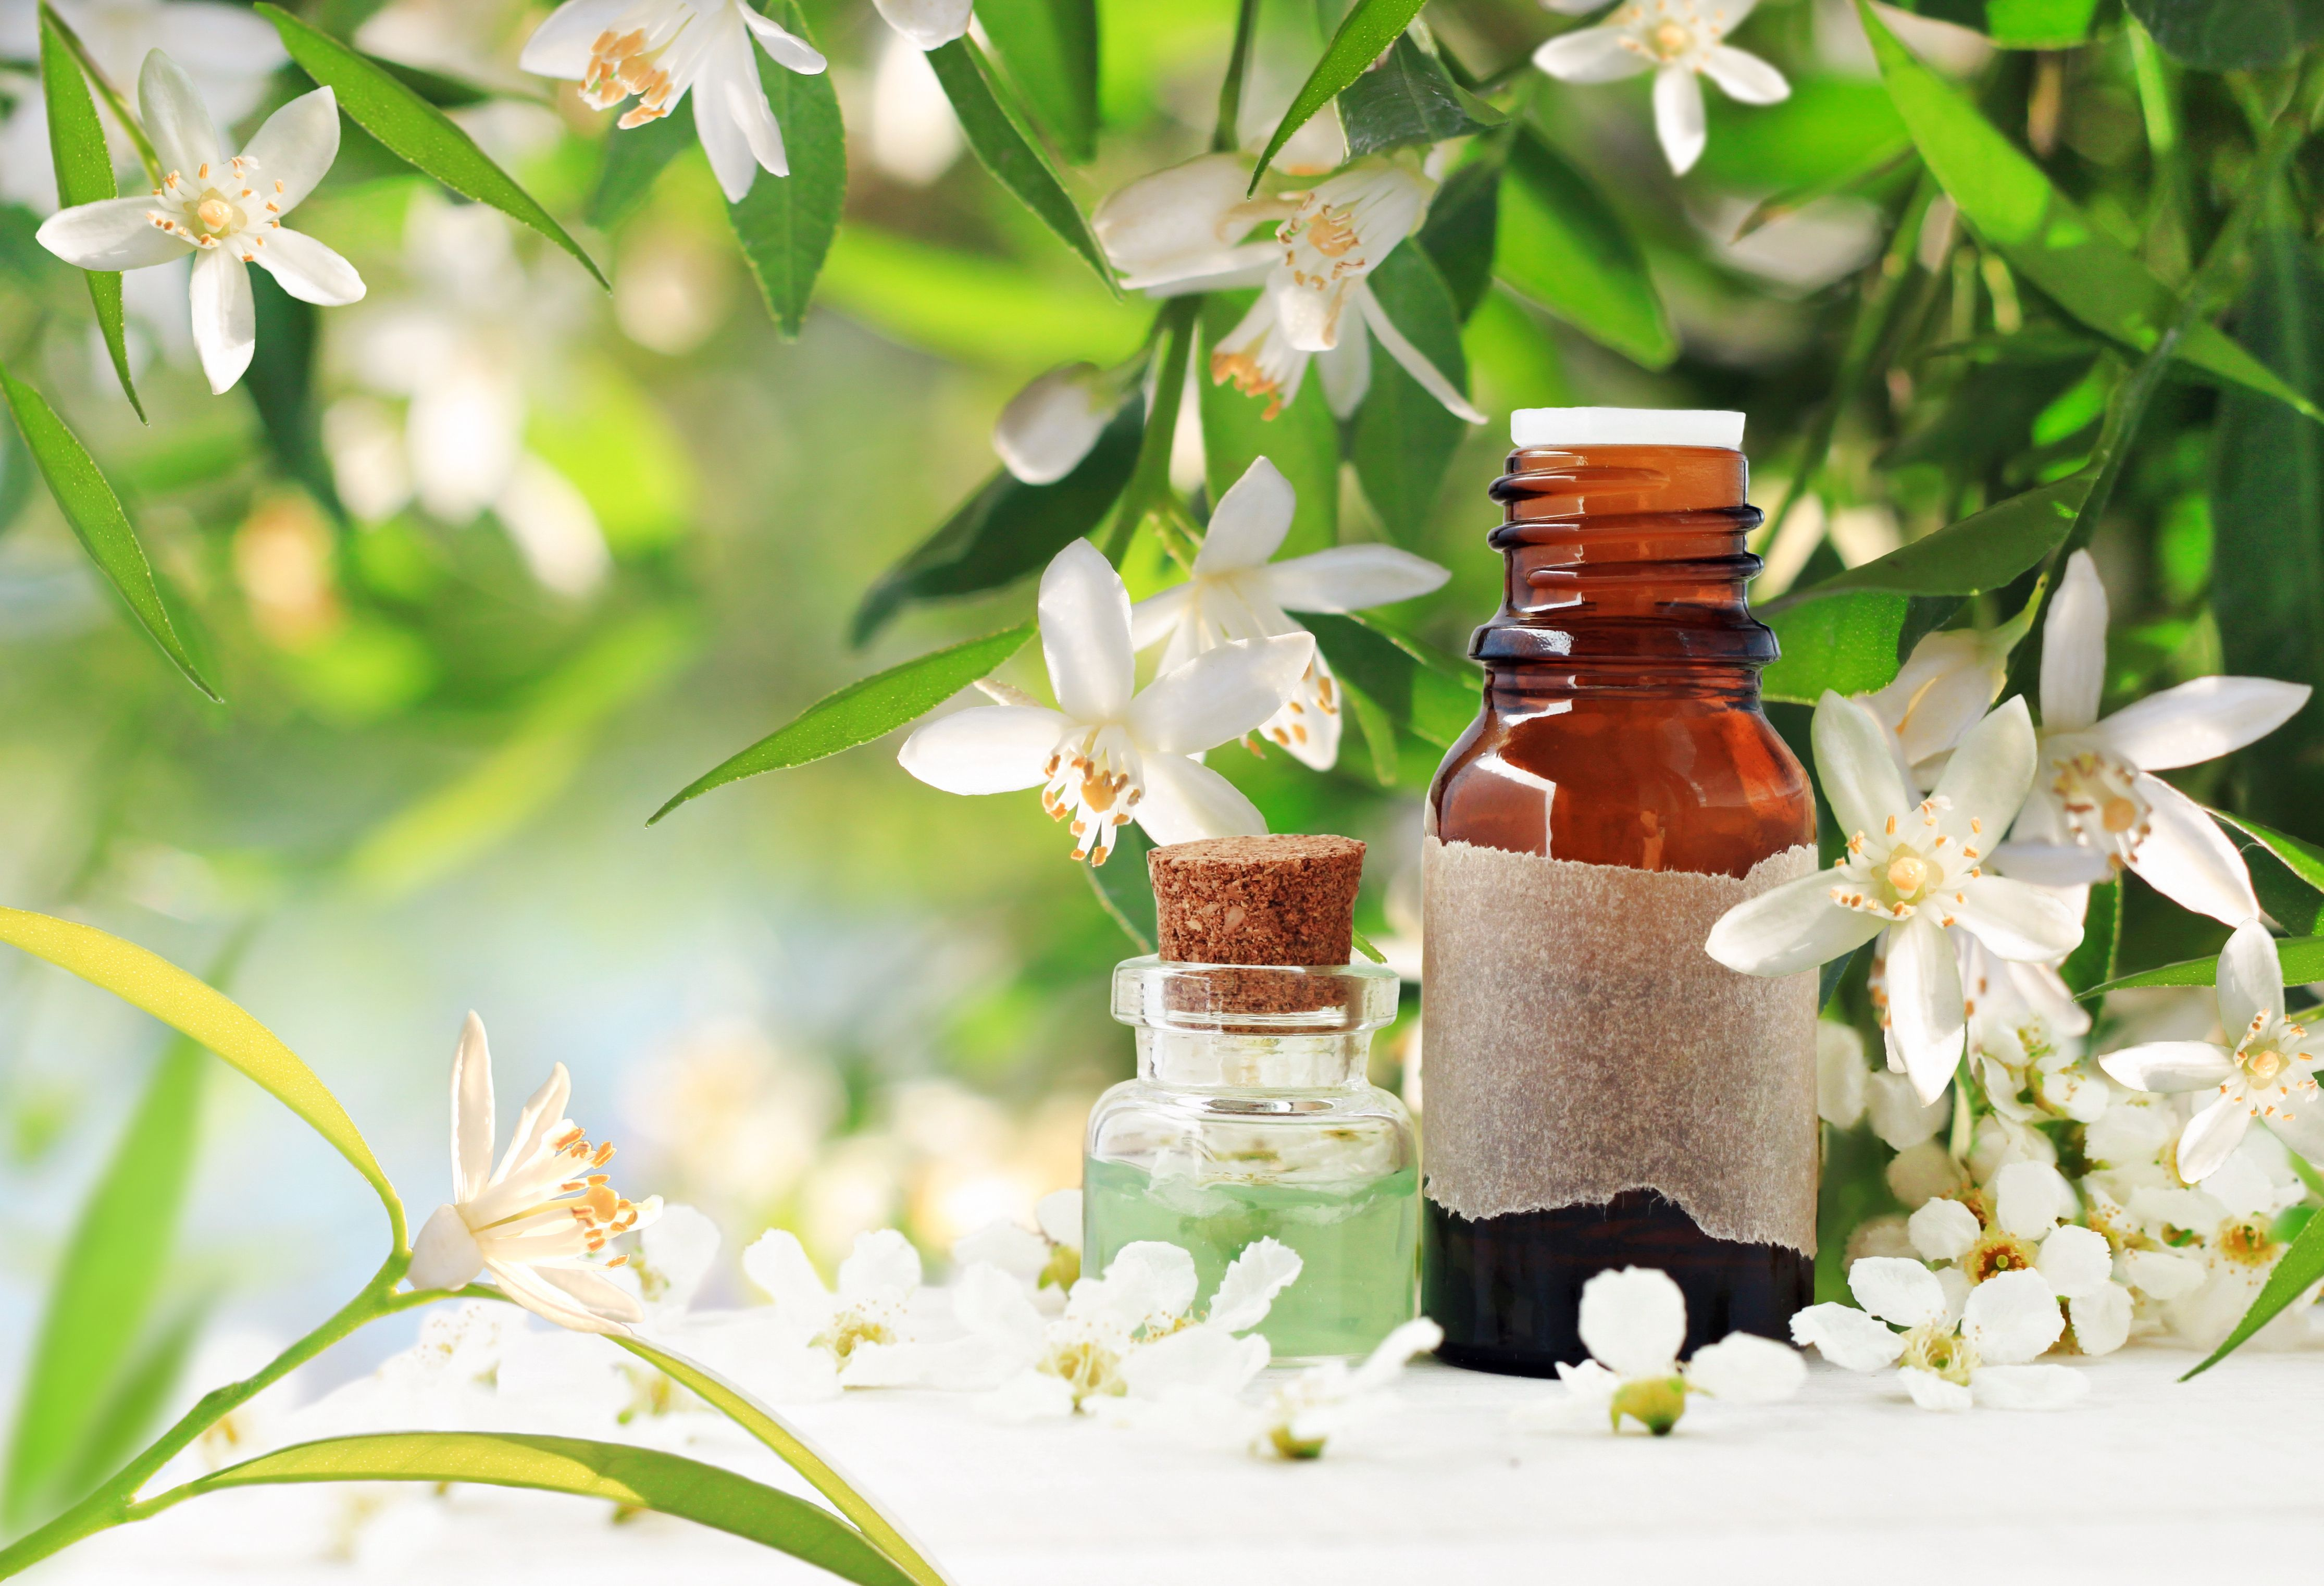 Neroli Oil Can Help Ease Menopausal Symptoms And Boost Intimacy Neroli Oil Essential Oil Blends Essential Oil Scents